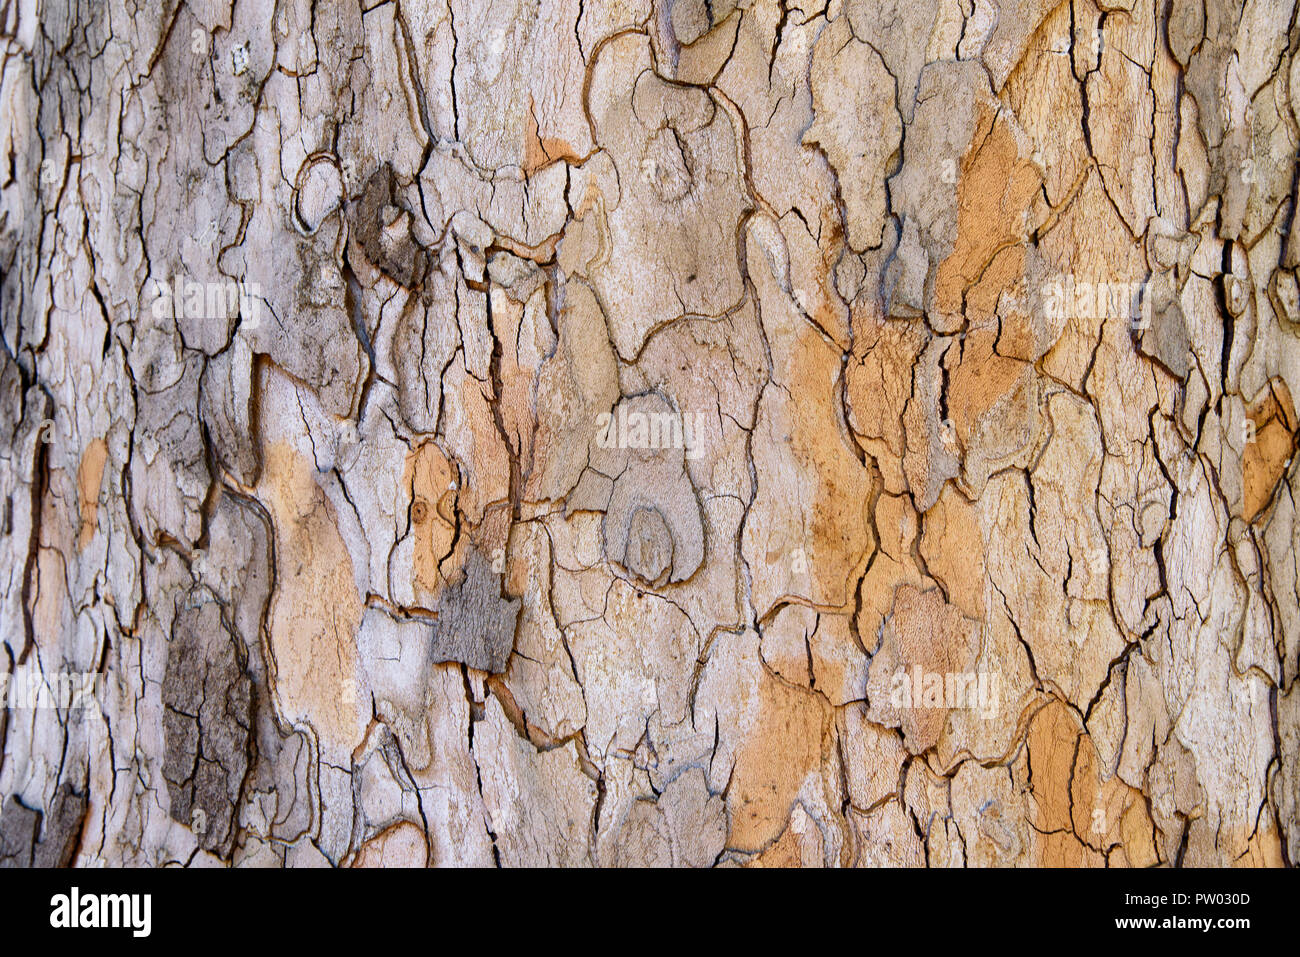 Tree bark texture, abstract wallpaper, rough surface - Stock Image